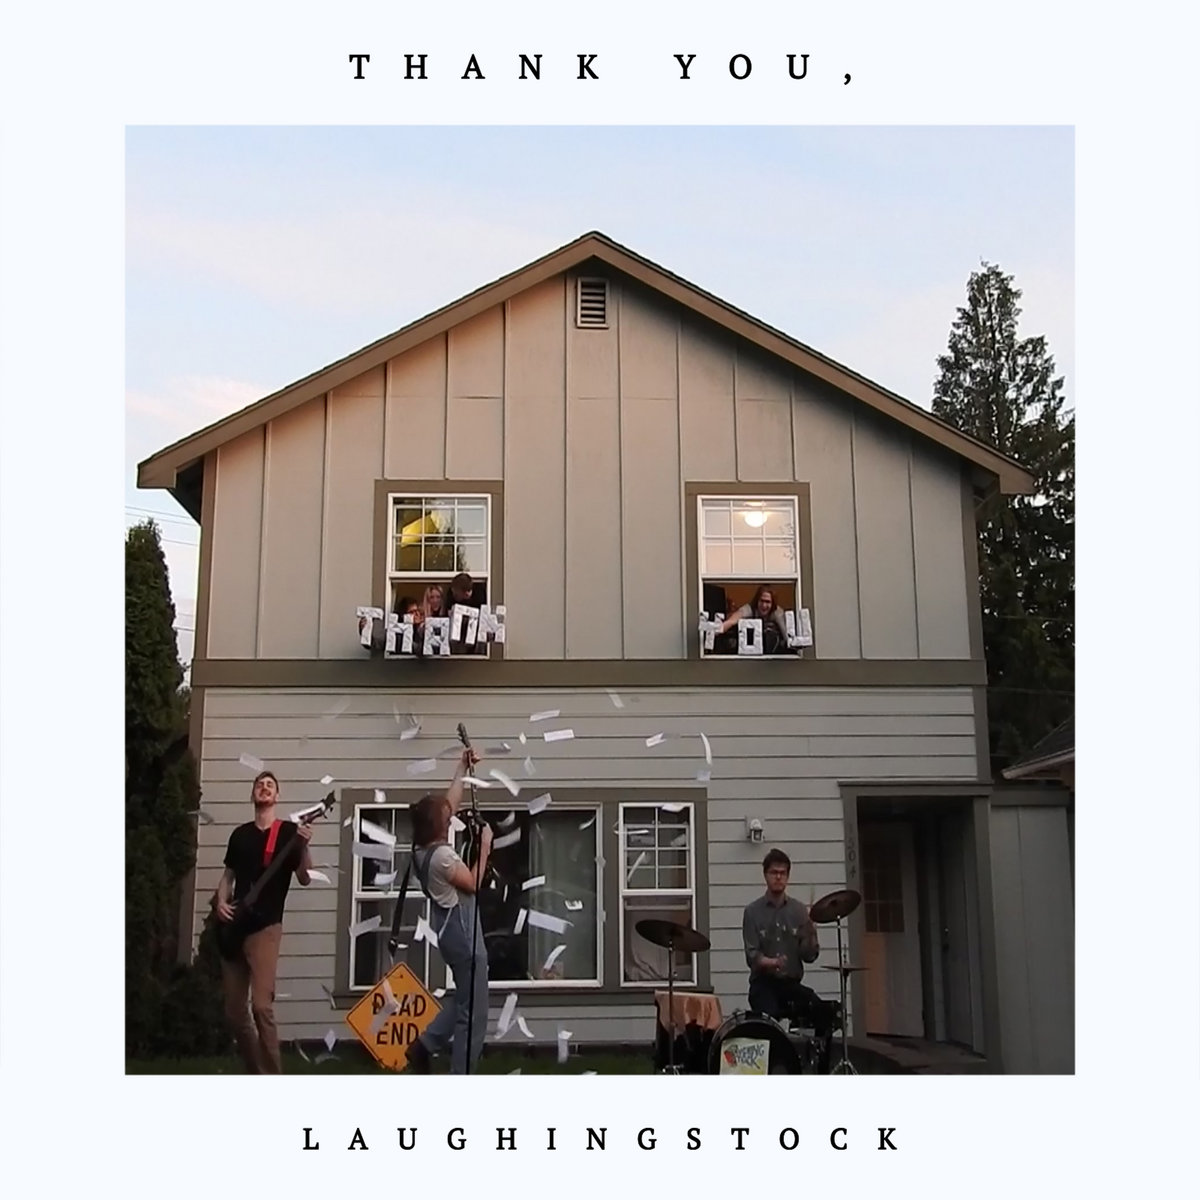 laughingstock - thank You